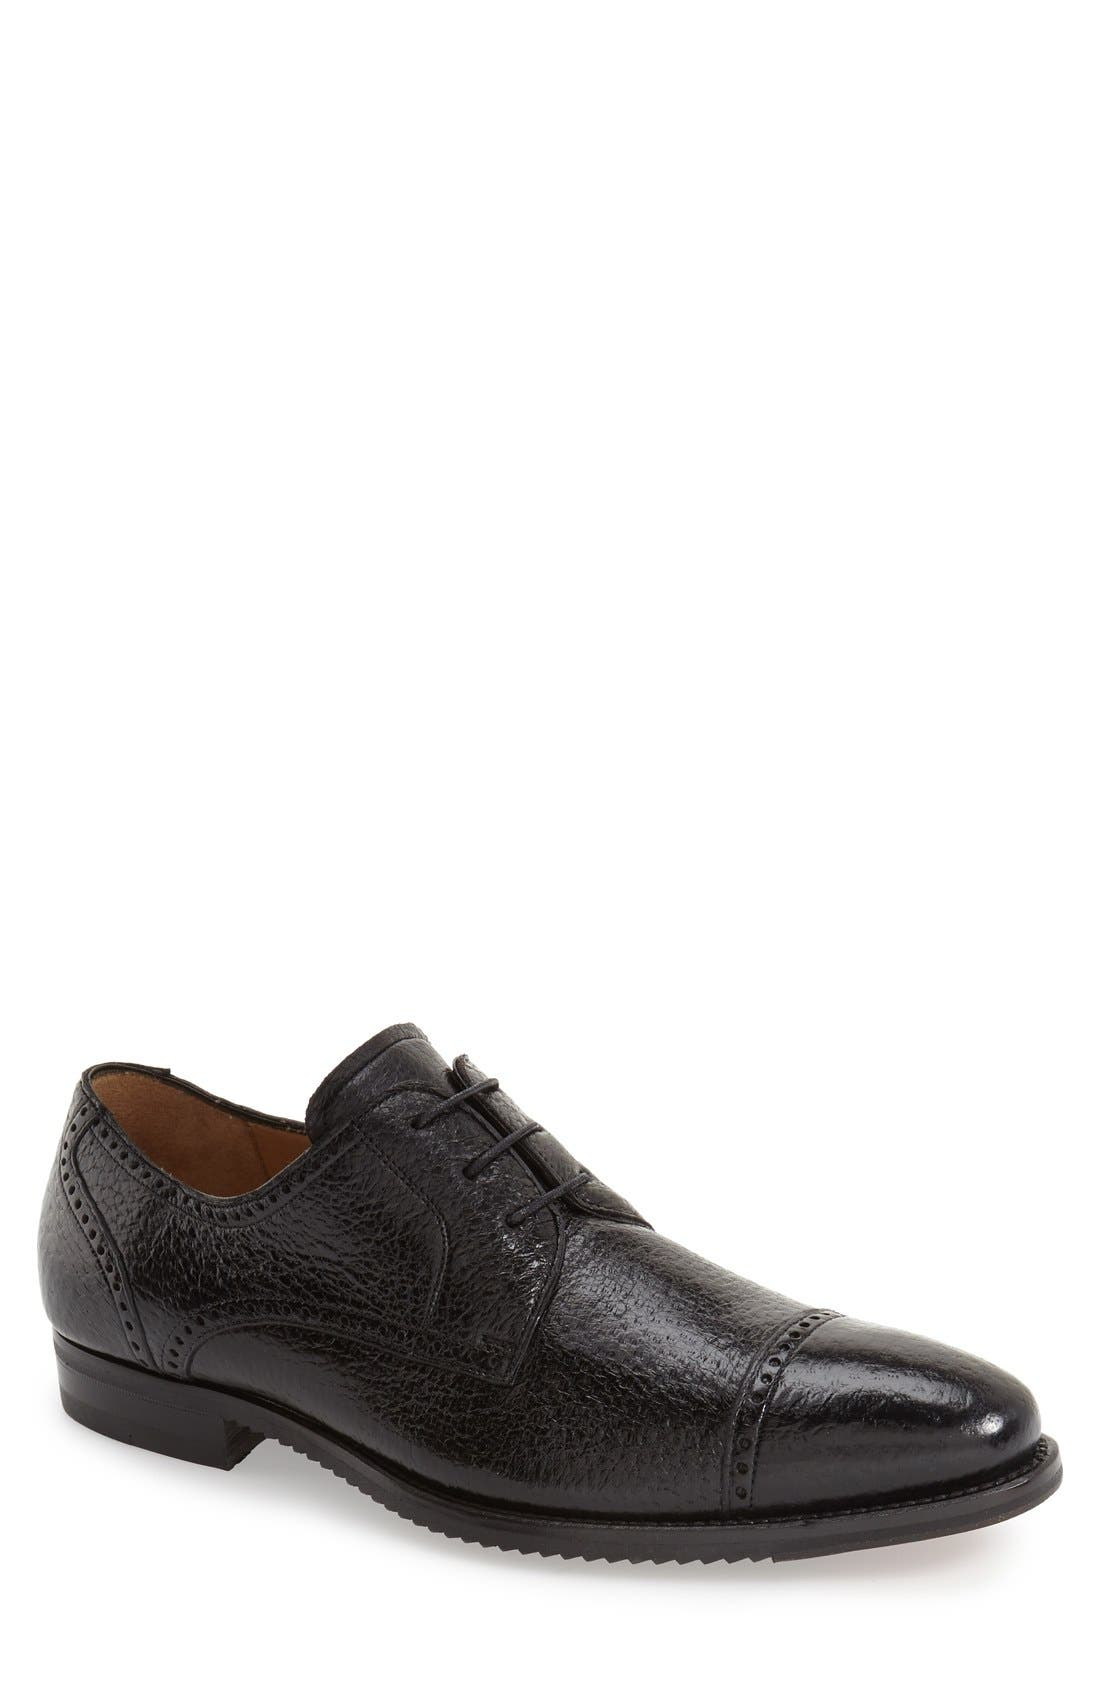 'Capri' Cap Toe Derby,                             Main thumbnail 1, color,                             BLACK